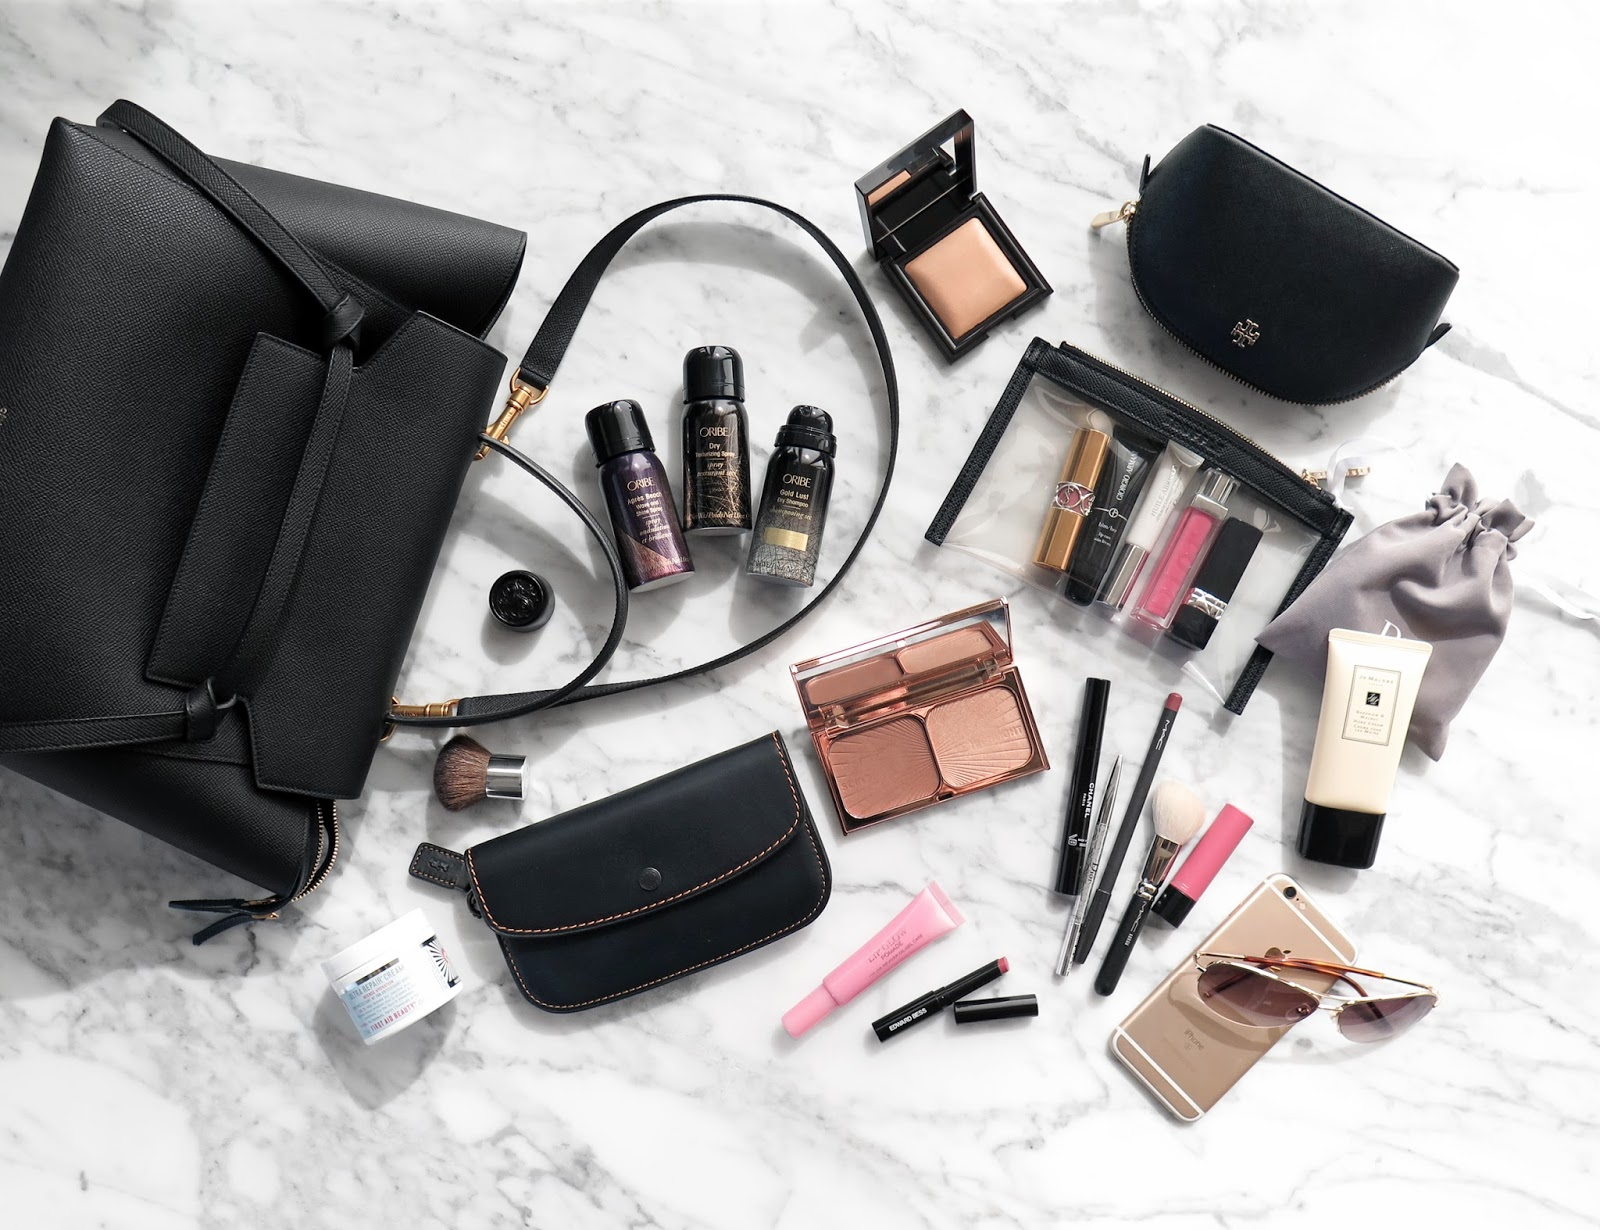 What S In My Bag Celine Mini Belt Bag Review The Beauty Look Book